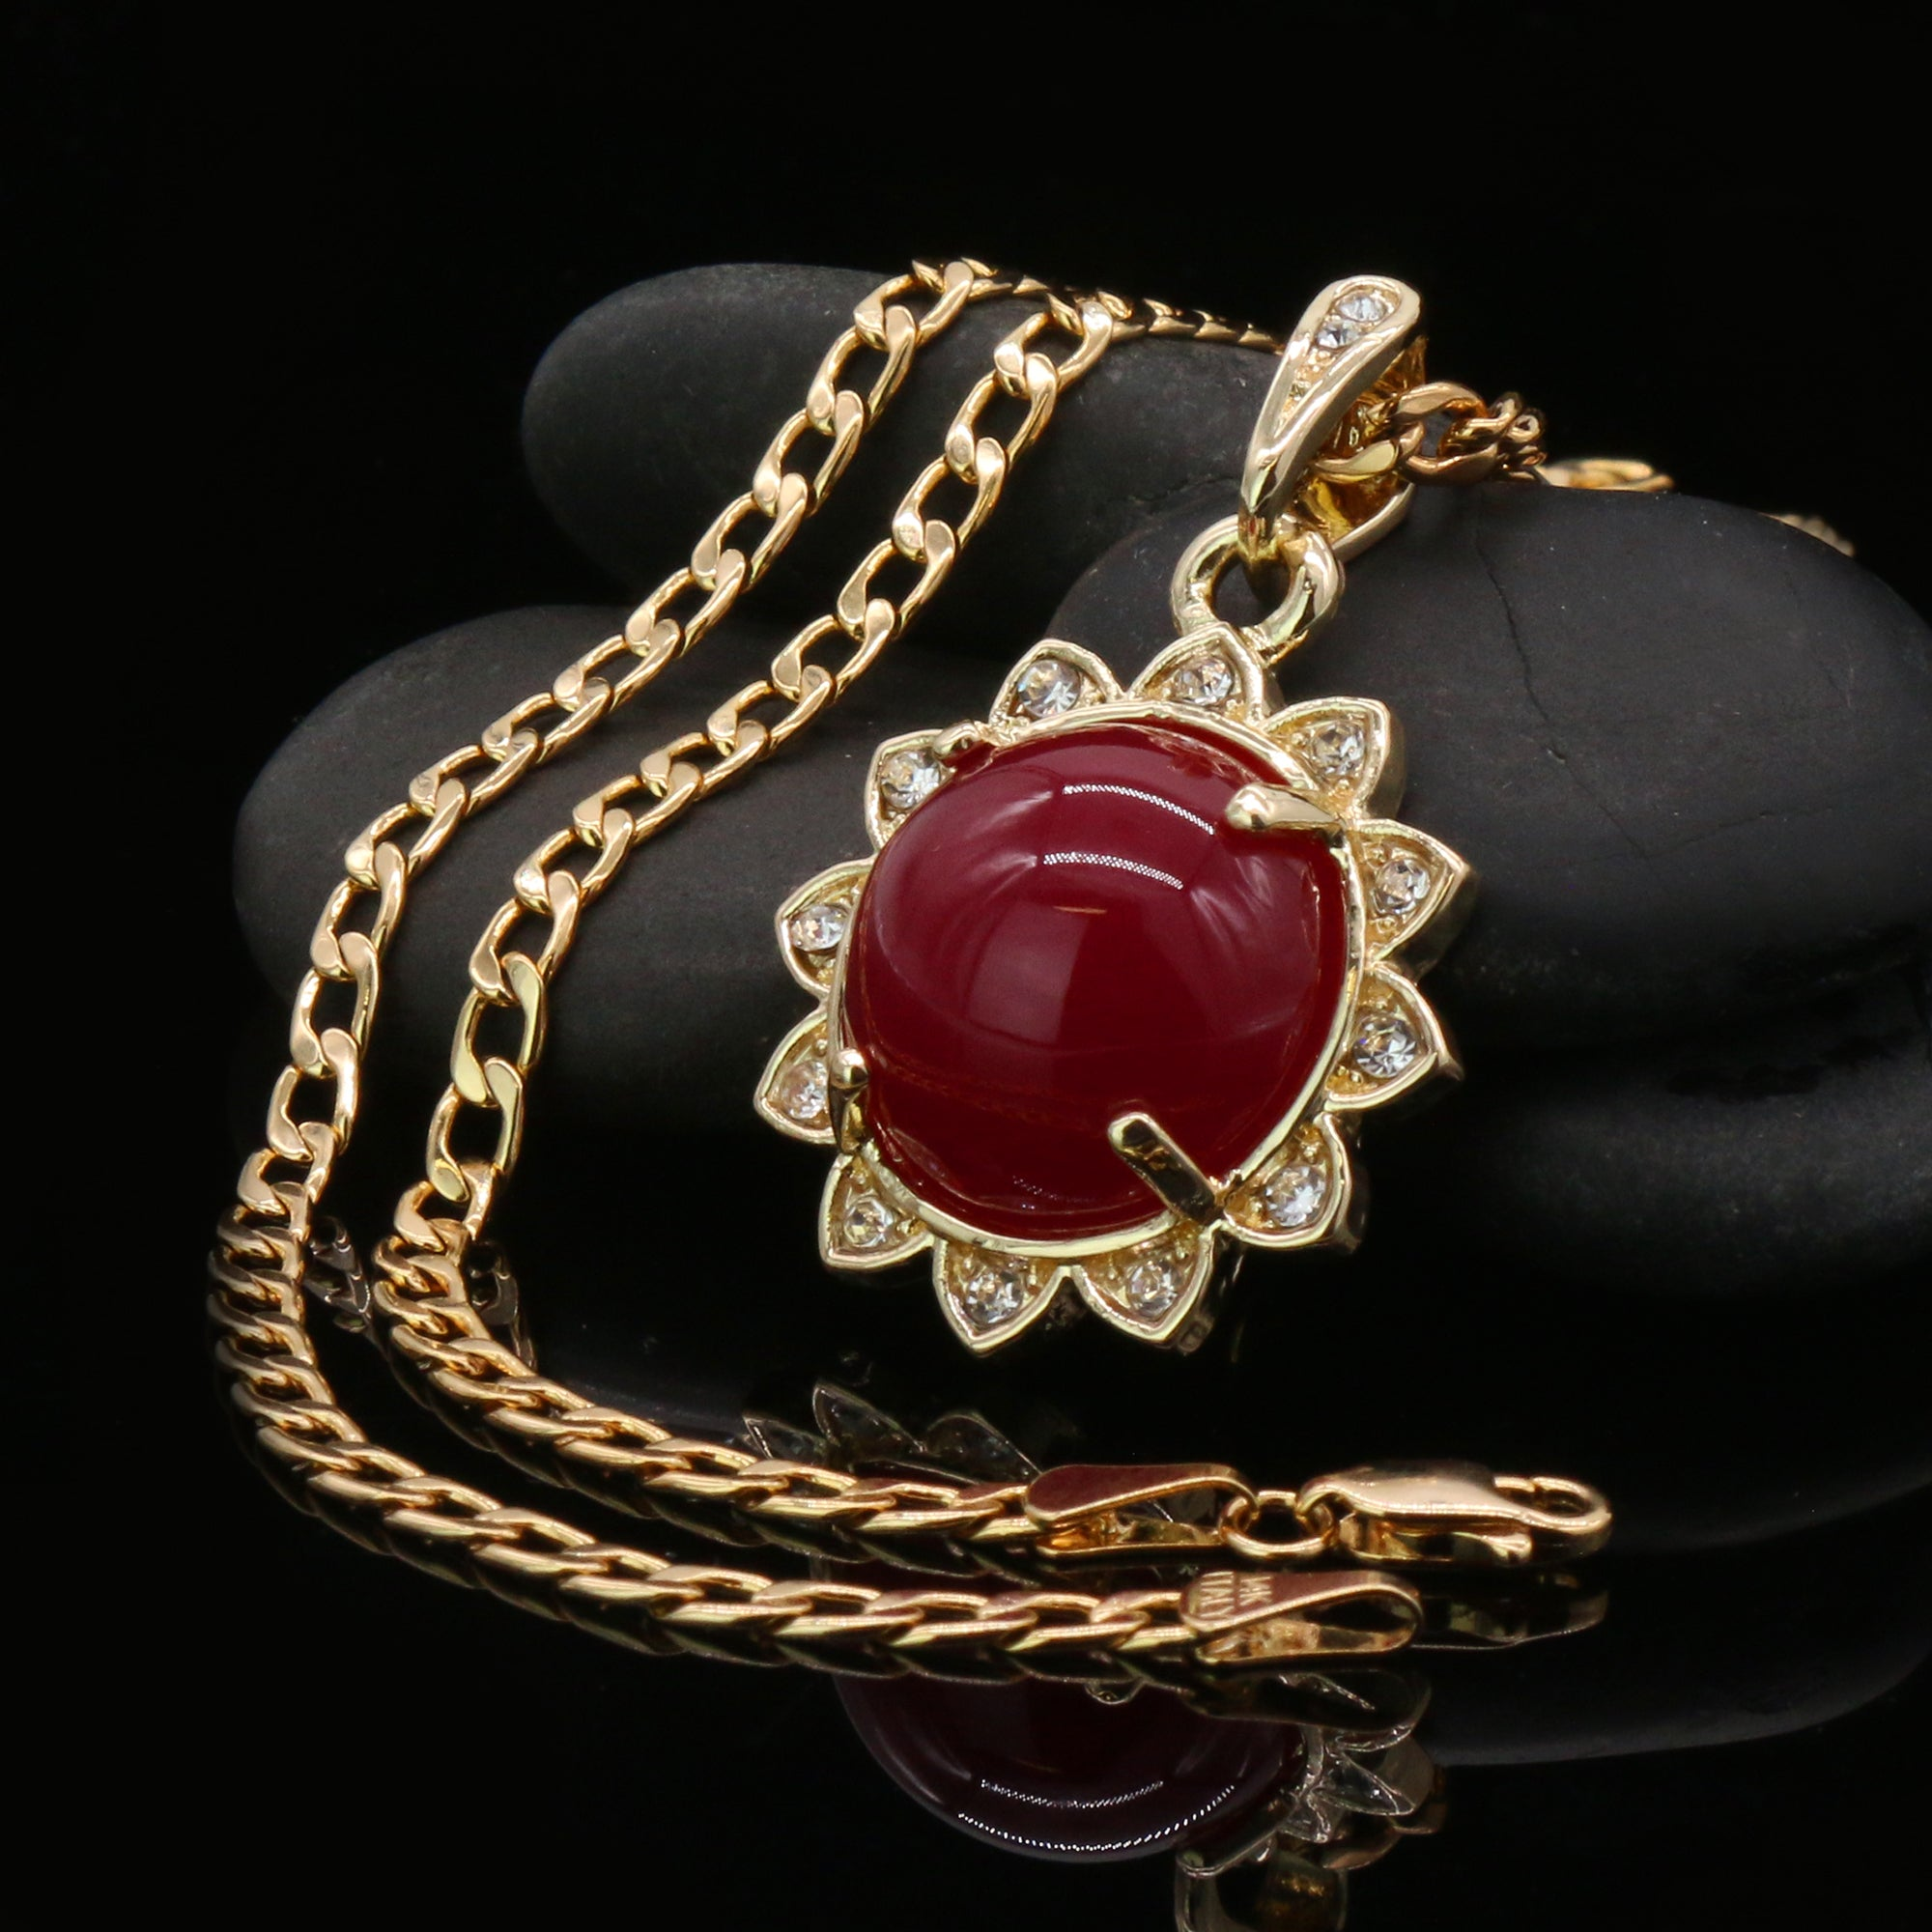 Red Round Women's Jade Chain Pendant Necklace